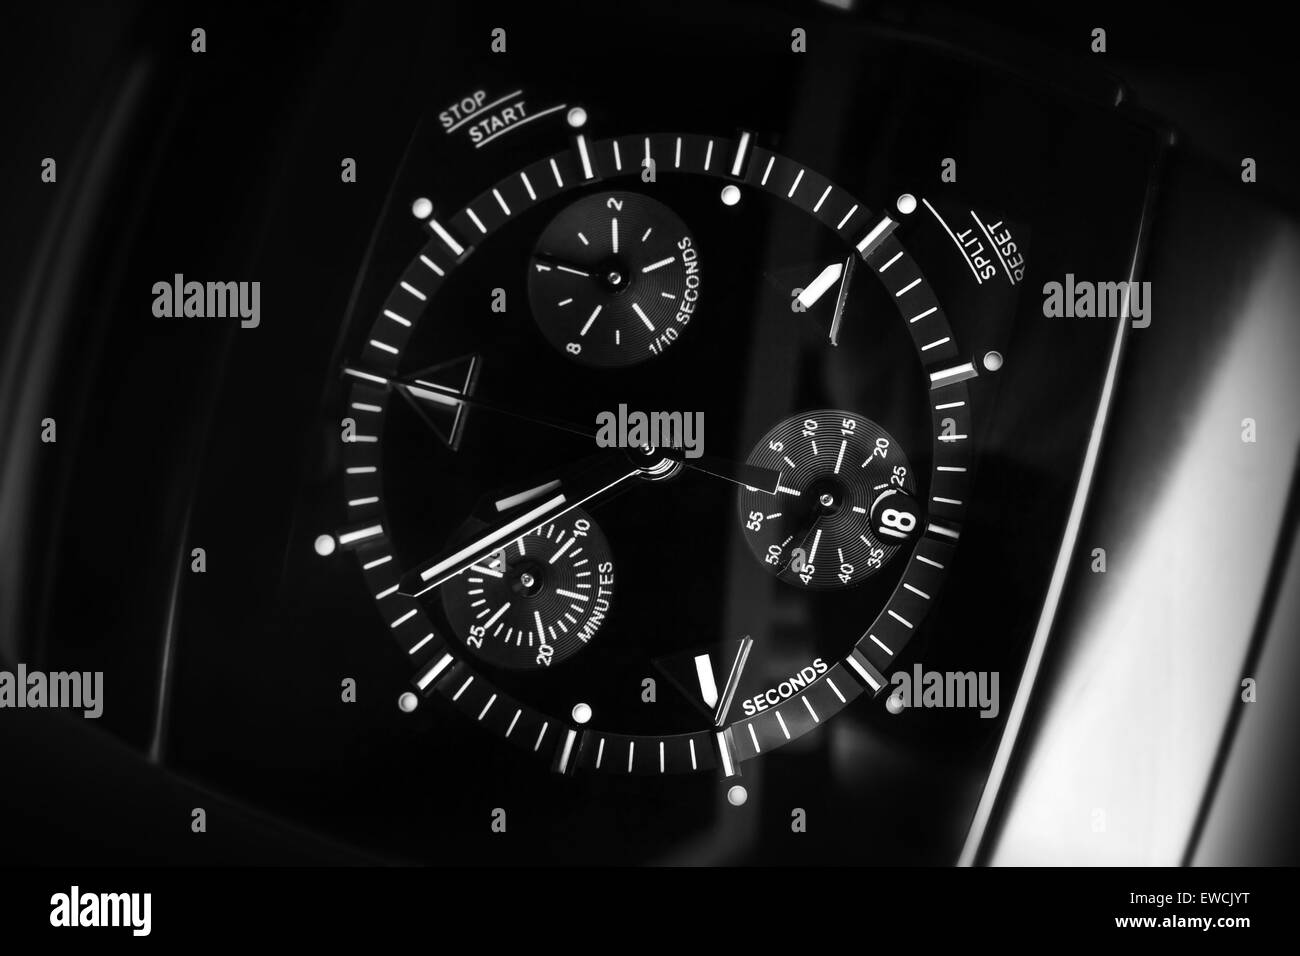 Luxury mens Chronograph Watch made of high-tech ceramics with sapphire glass. Close-up black and white studio photo - Stock Image